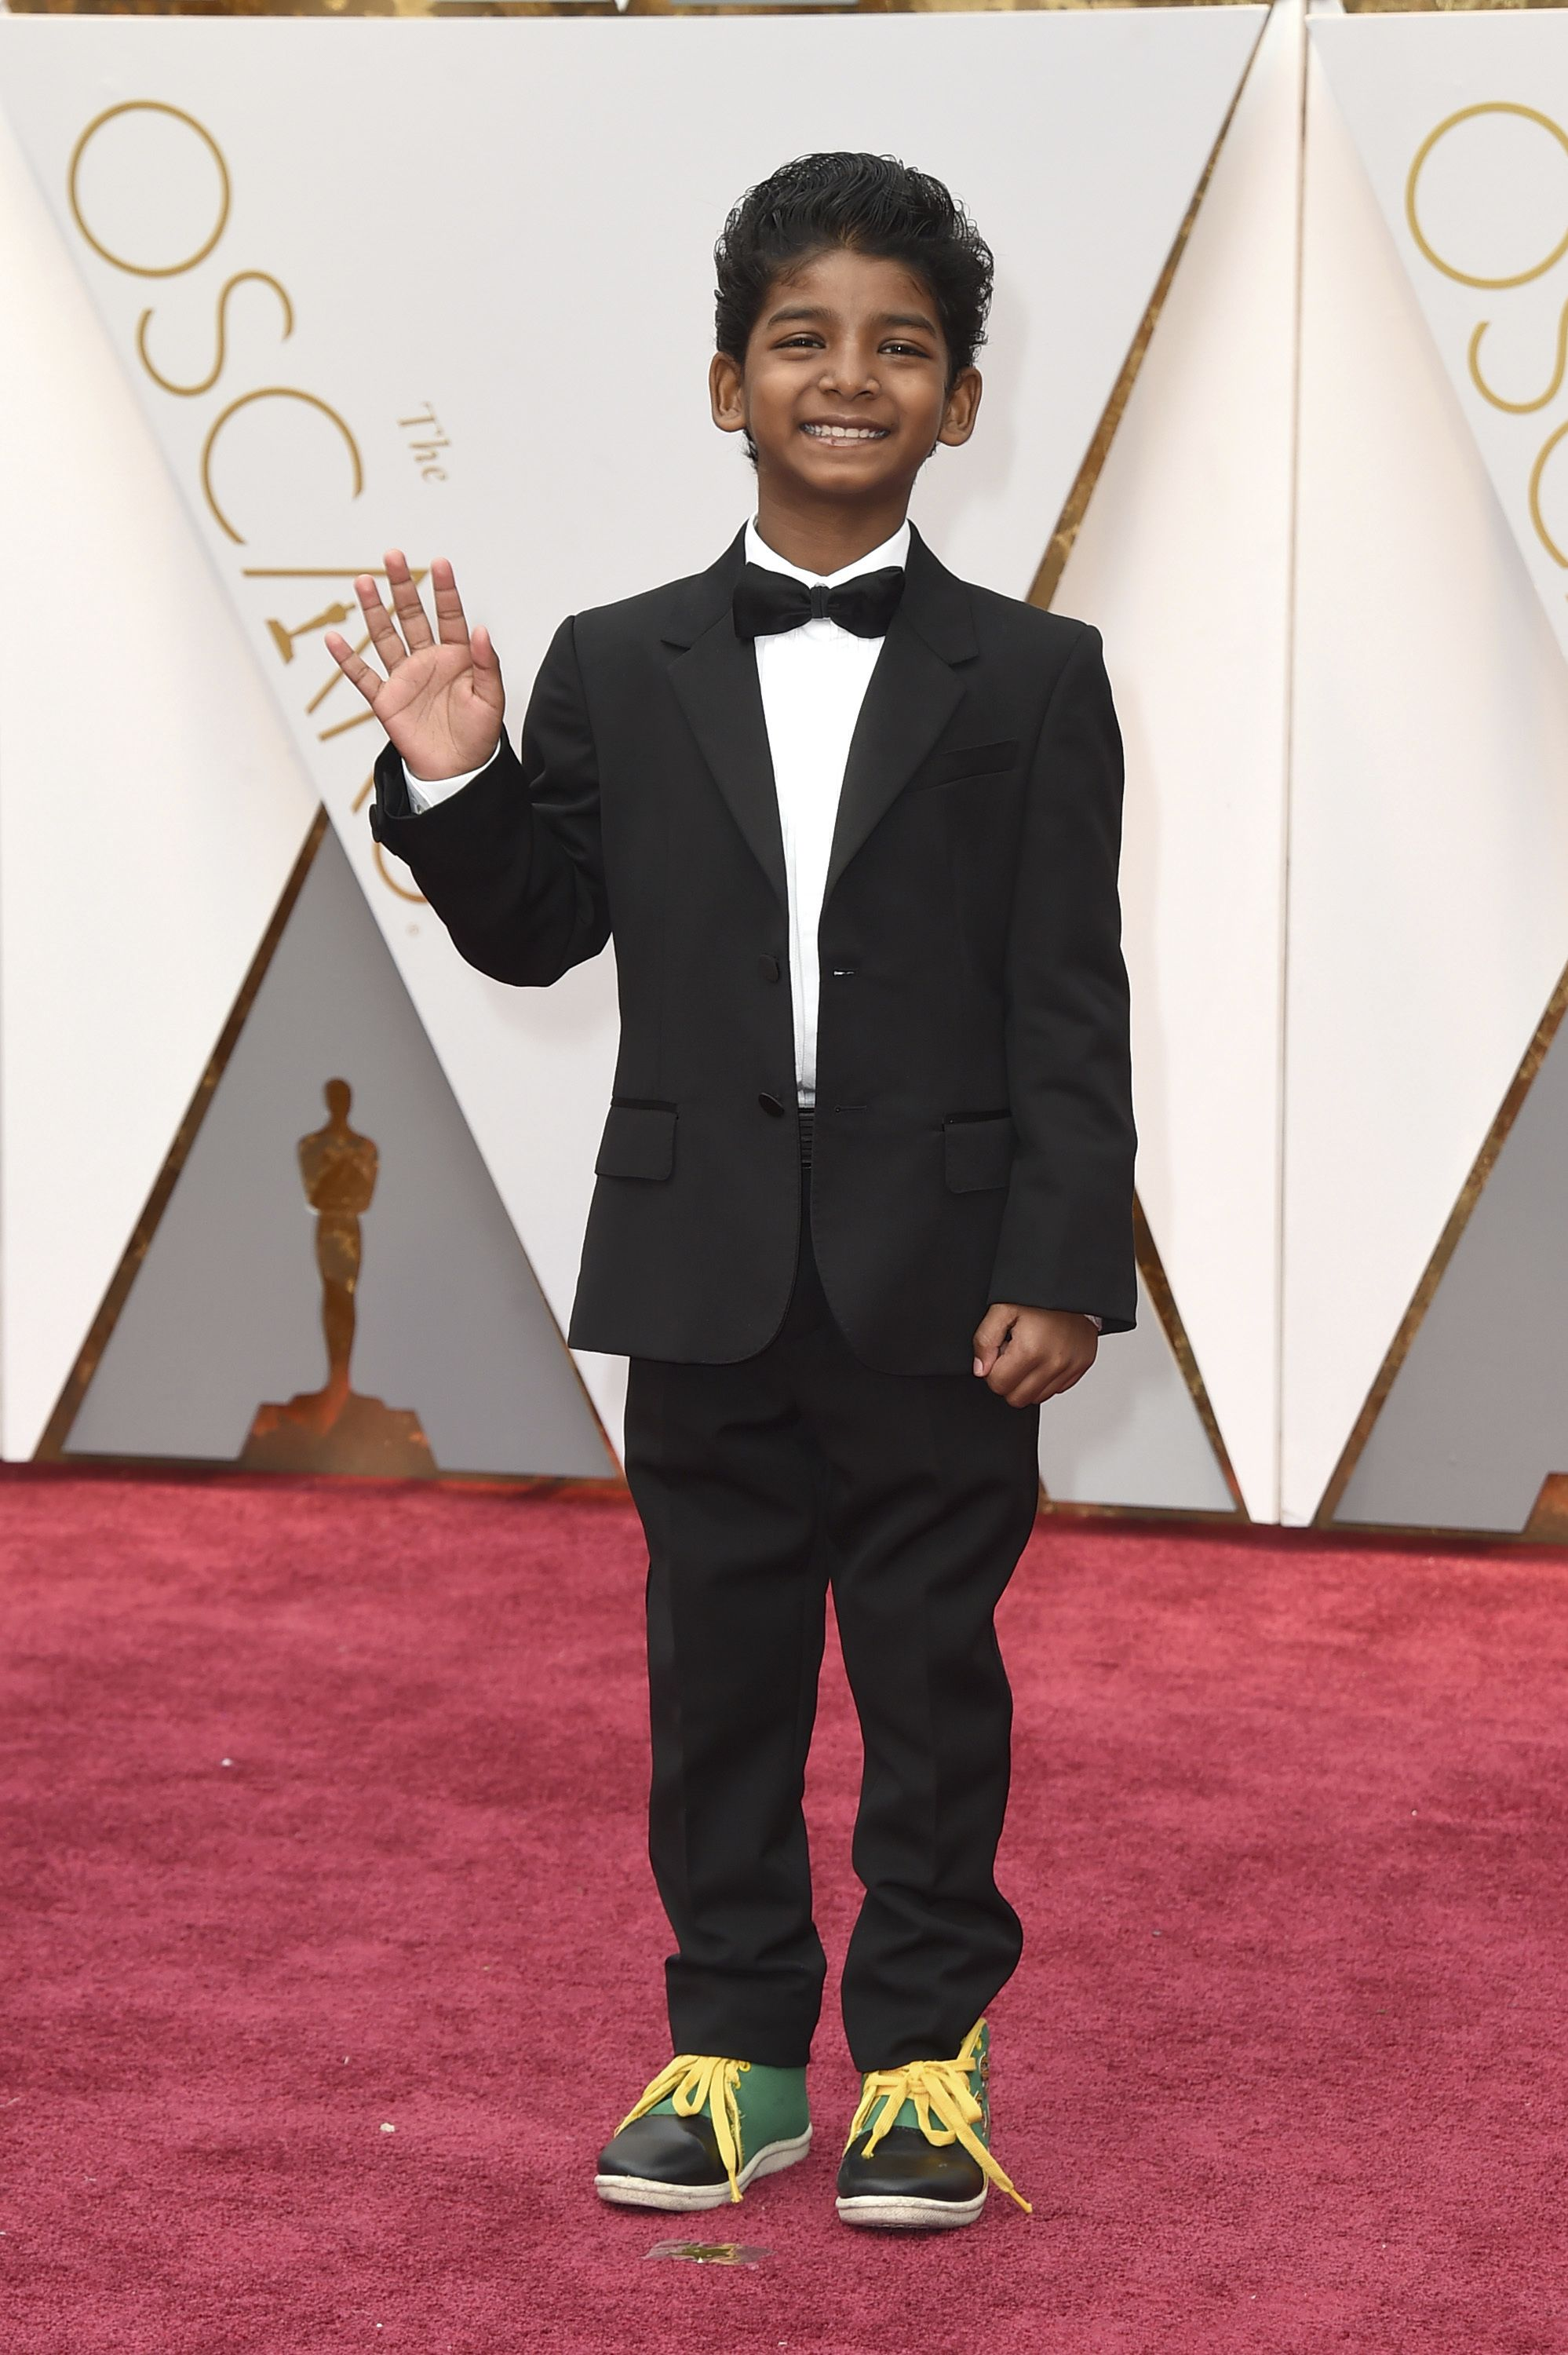 Sunny Pawar arrives at the Oscars on Sunday, Feb. 26, 2017, at the Dolby Theatre in Los Angeles. (Photo by Jordan Strauss/Invision/AP)